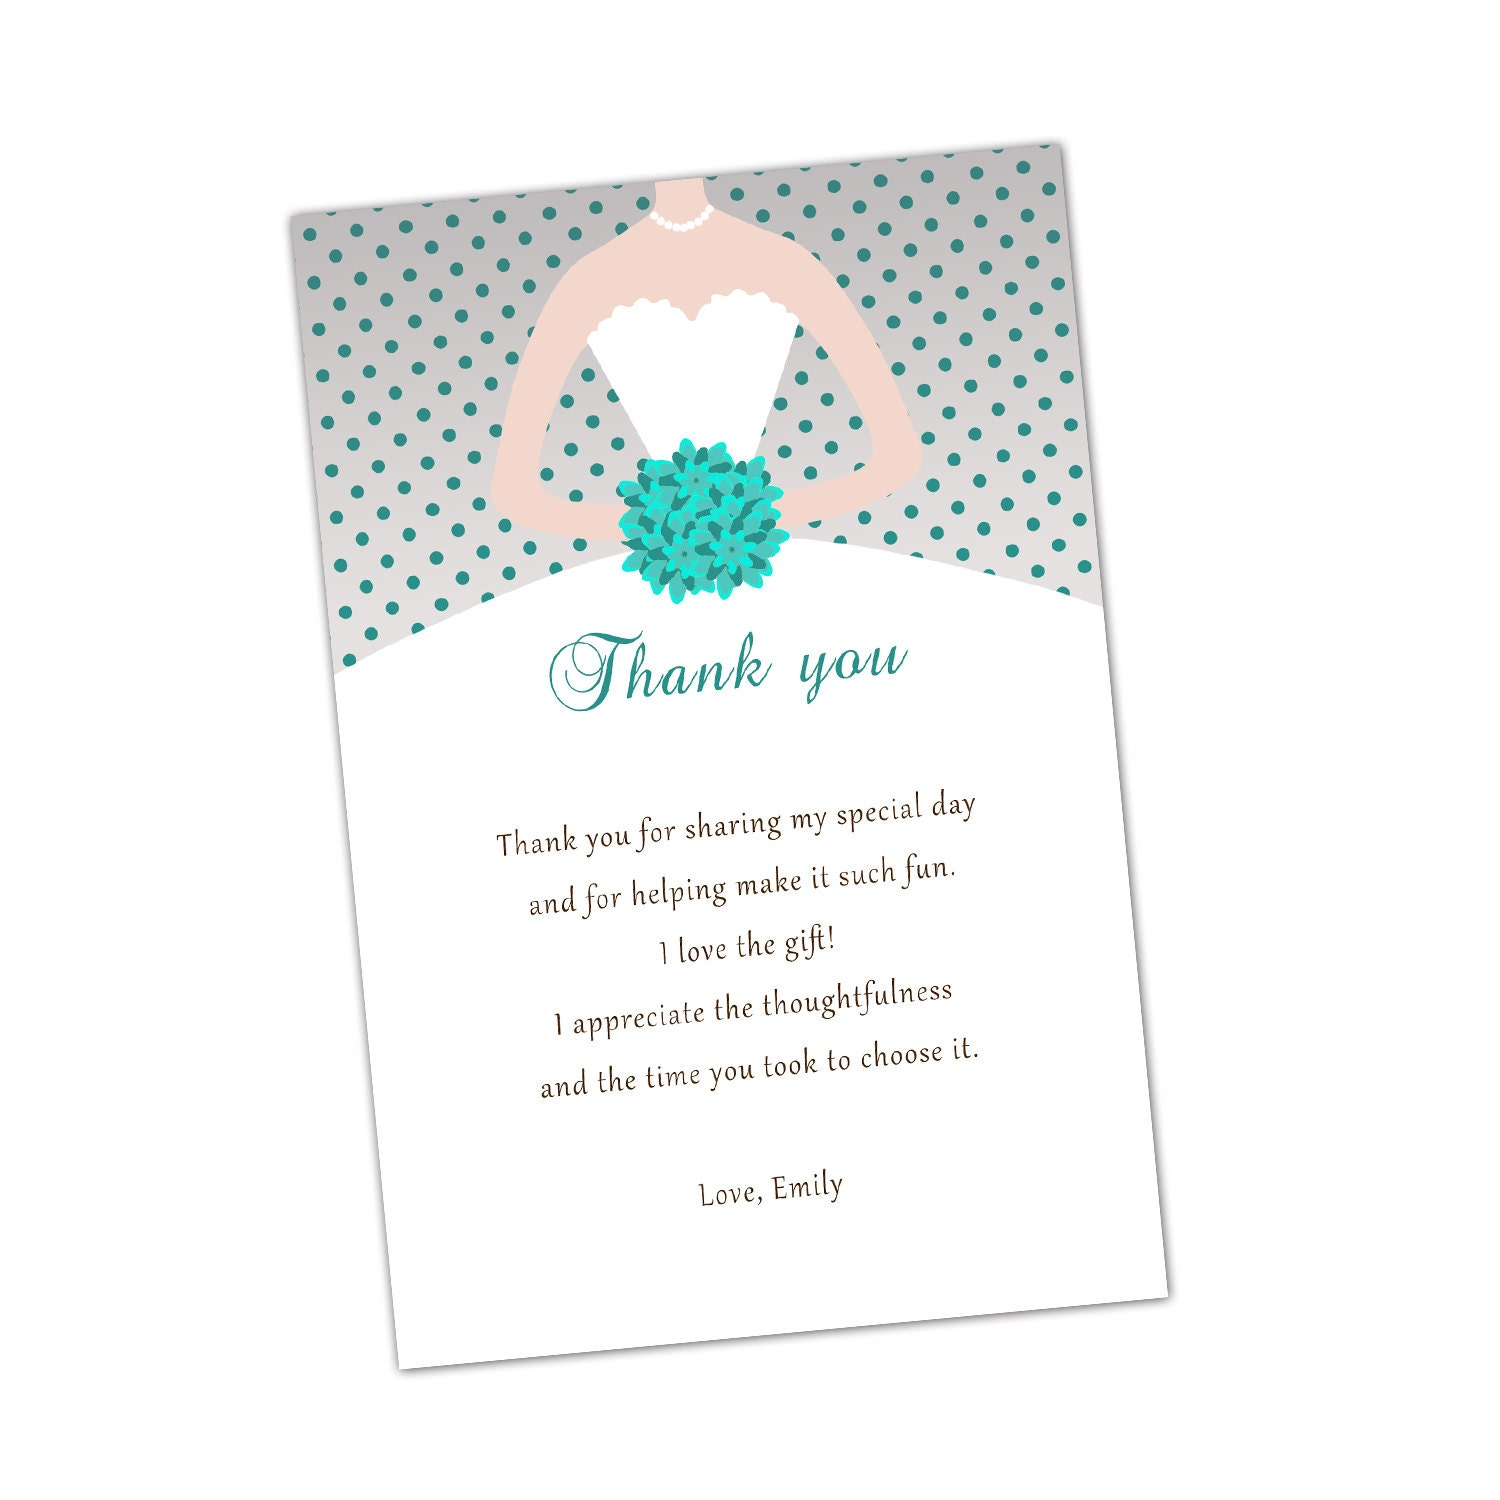 Grey turquoise bridal shower thank you cards bouquet bride zoom kristyandbryce Gallery